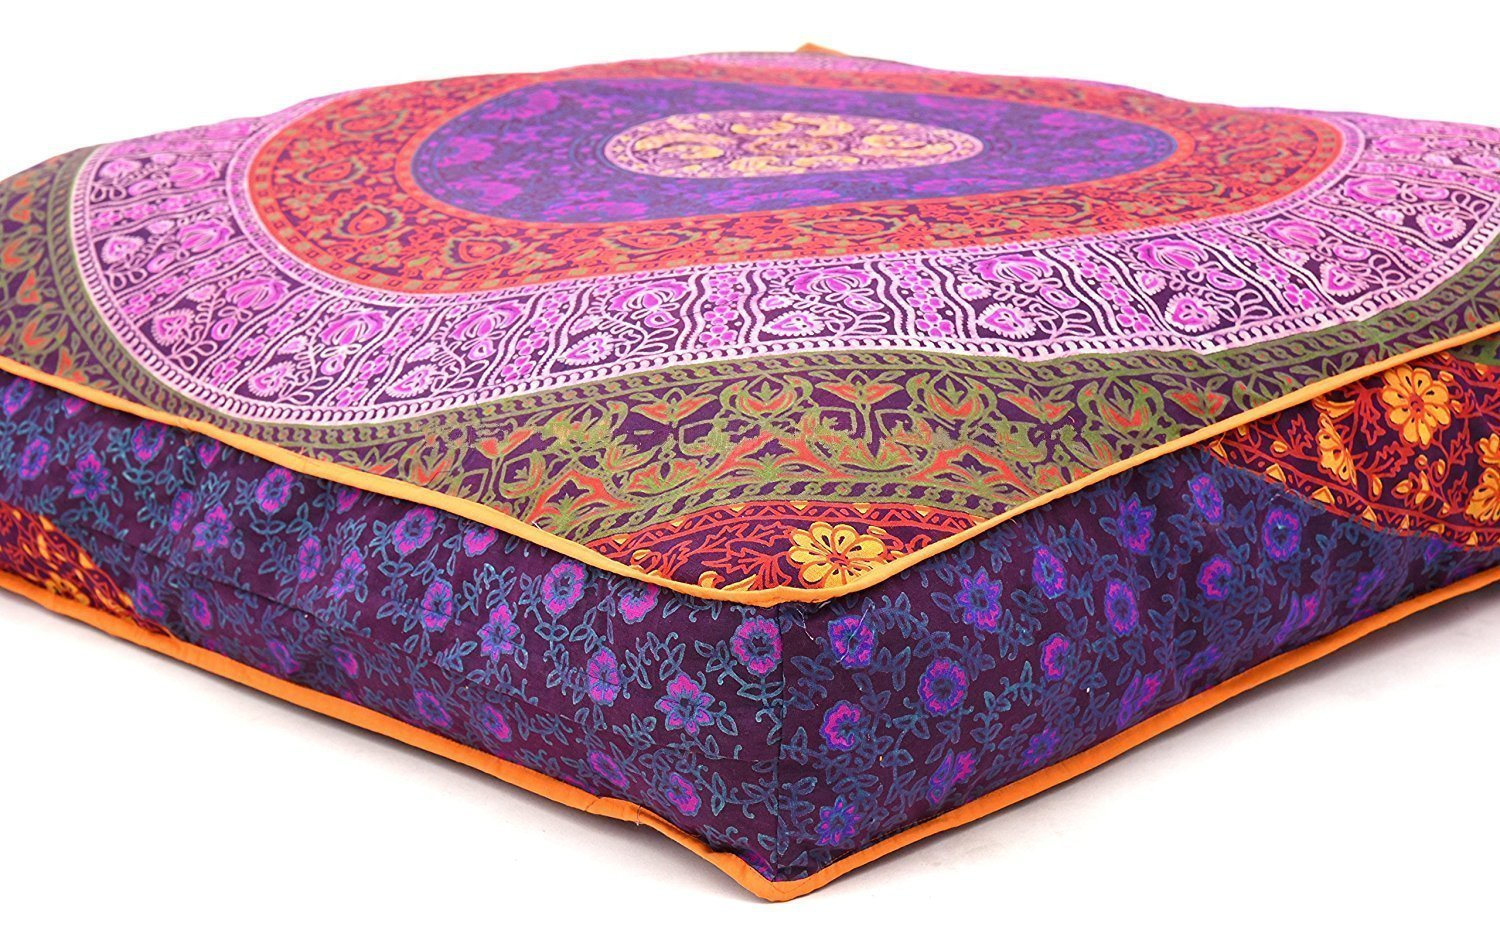 yuvancrafts Square Mandala Floor Pillow Indian Cushion Cover Floor Pillow Sham Ottoman Floor Pouf Oversized Sofa Large Dog Bed 32''X32'' (Pillow Cover)